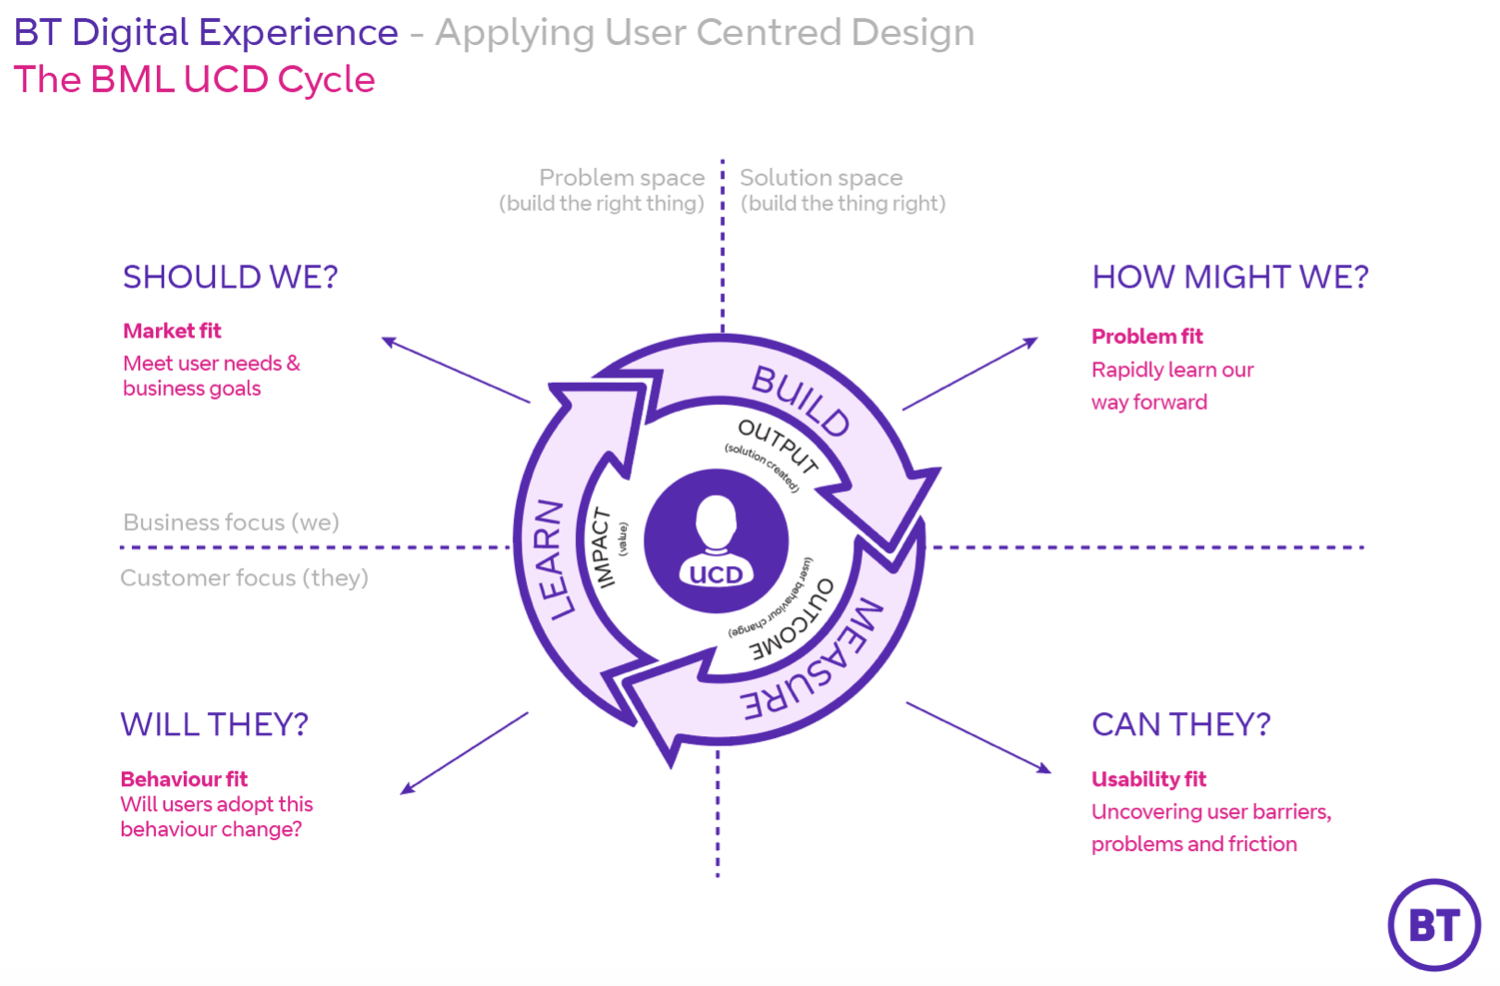 The build-measure-learn user centered design cycle at BT.